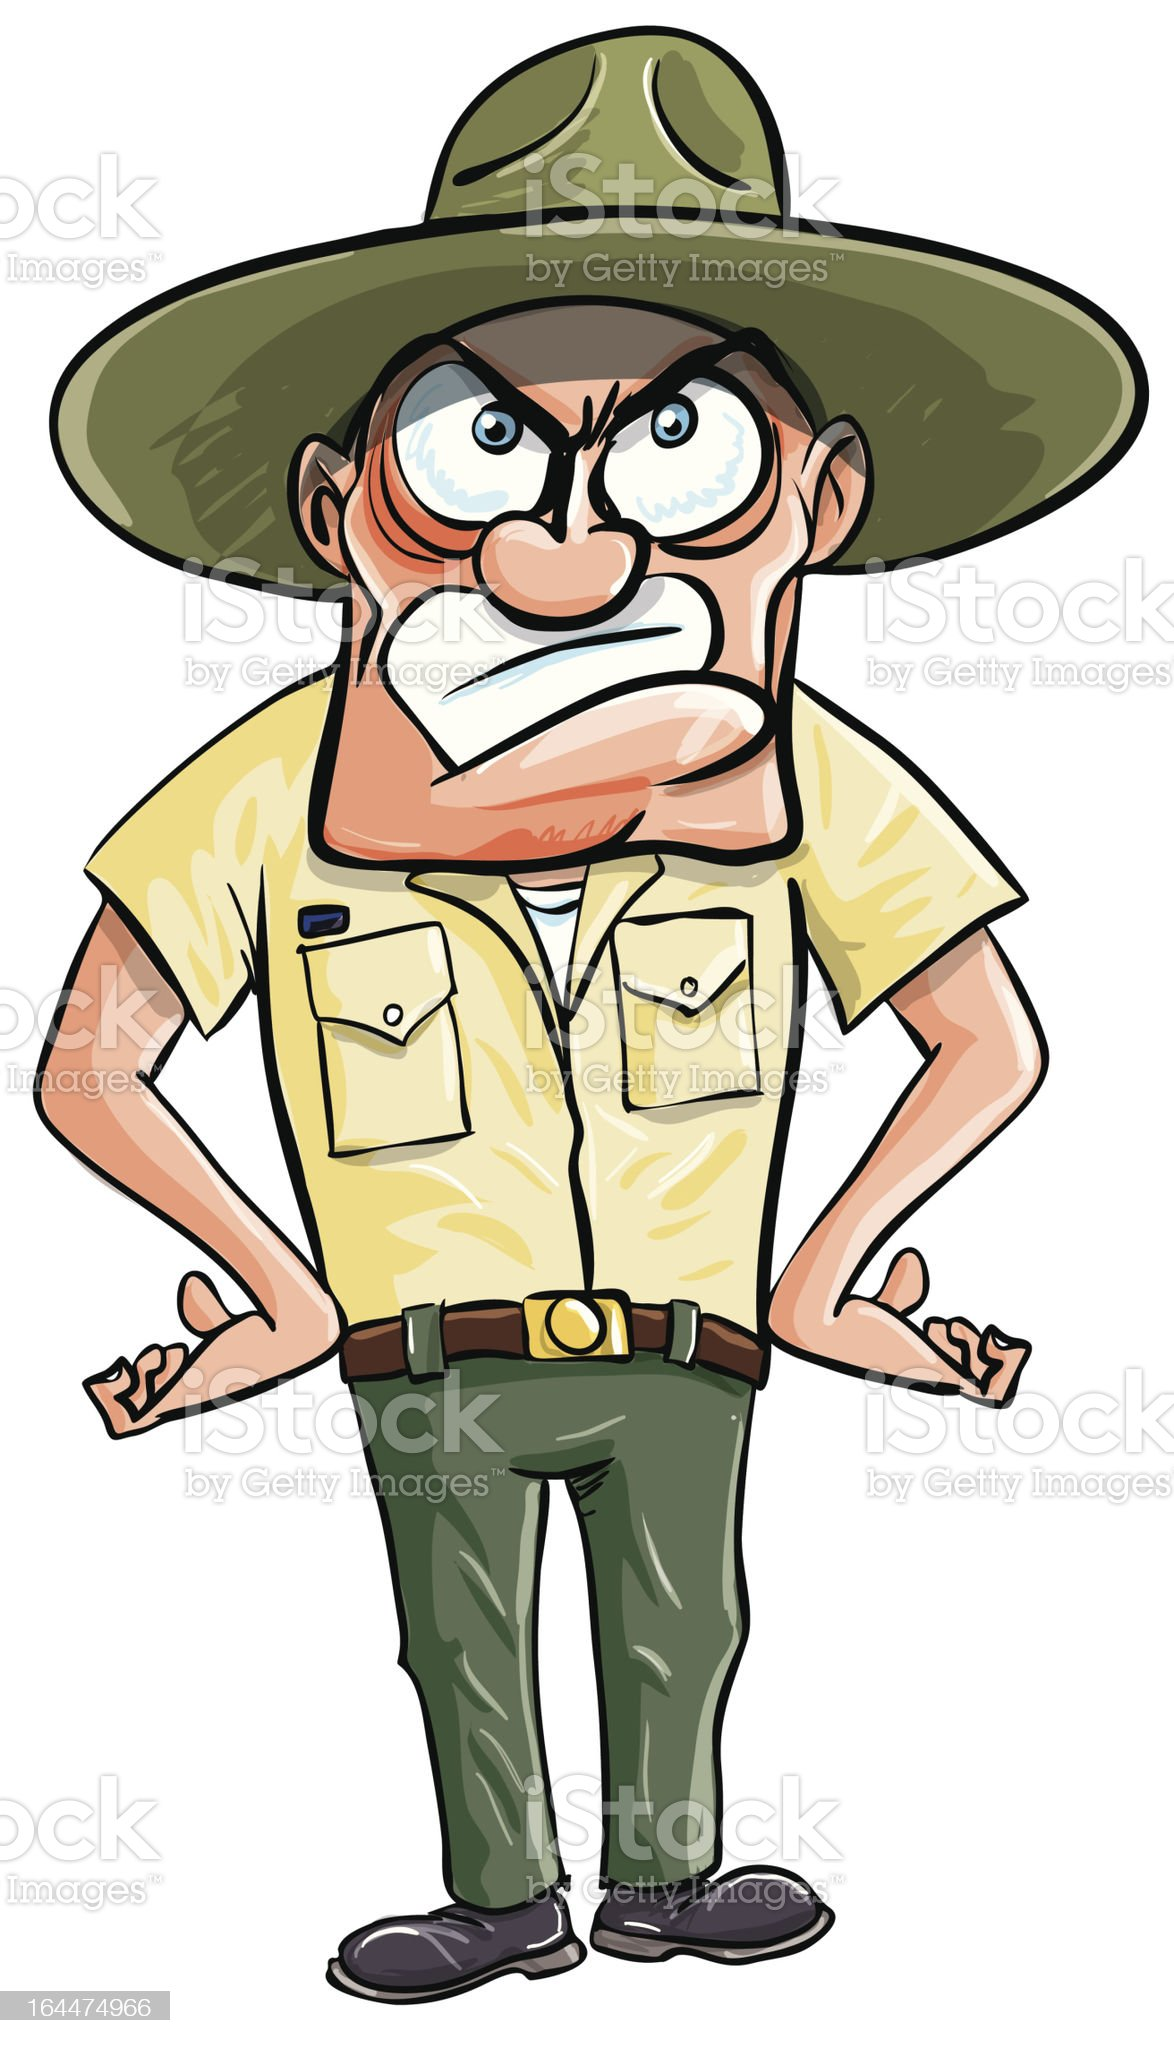 Angry cartoon drill sargent. Isolated on white royalty-free stock vector art